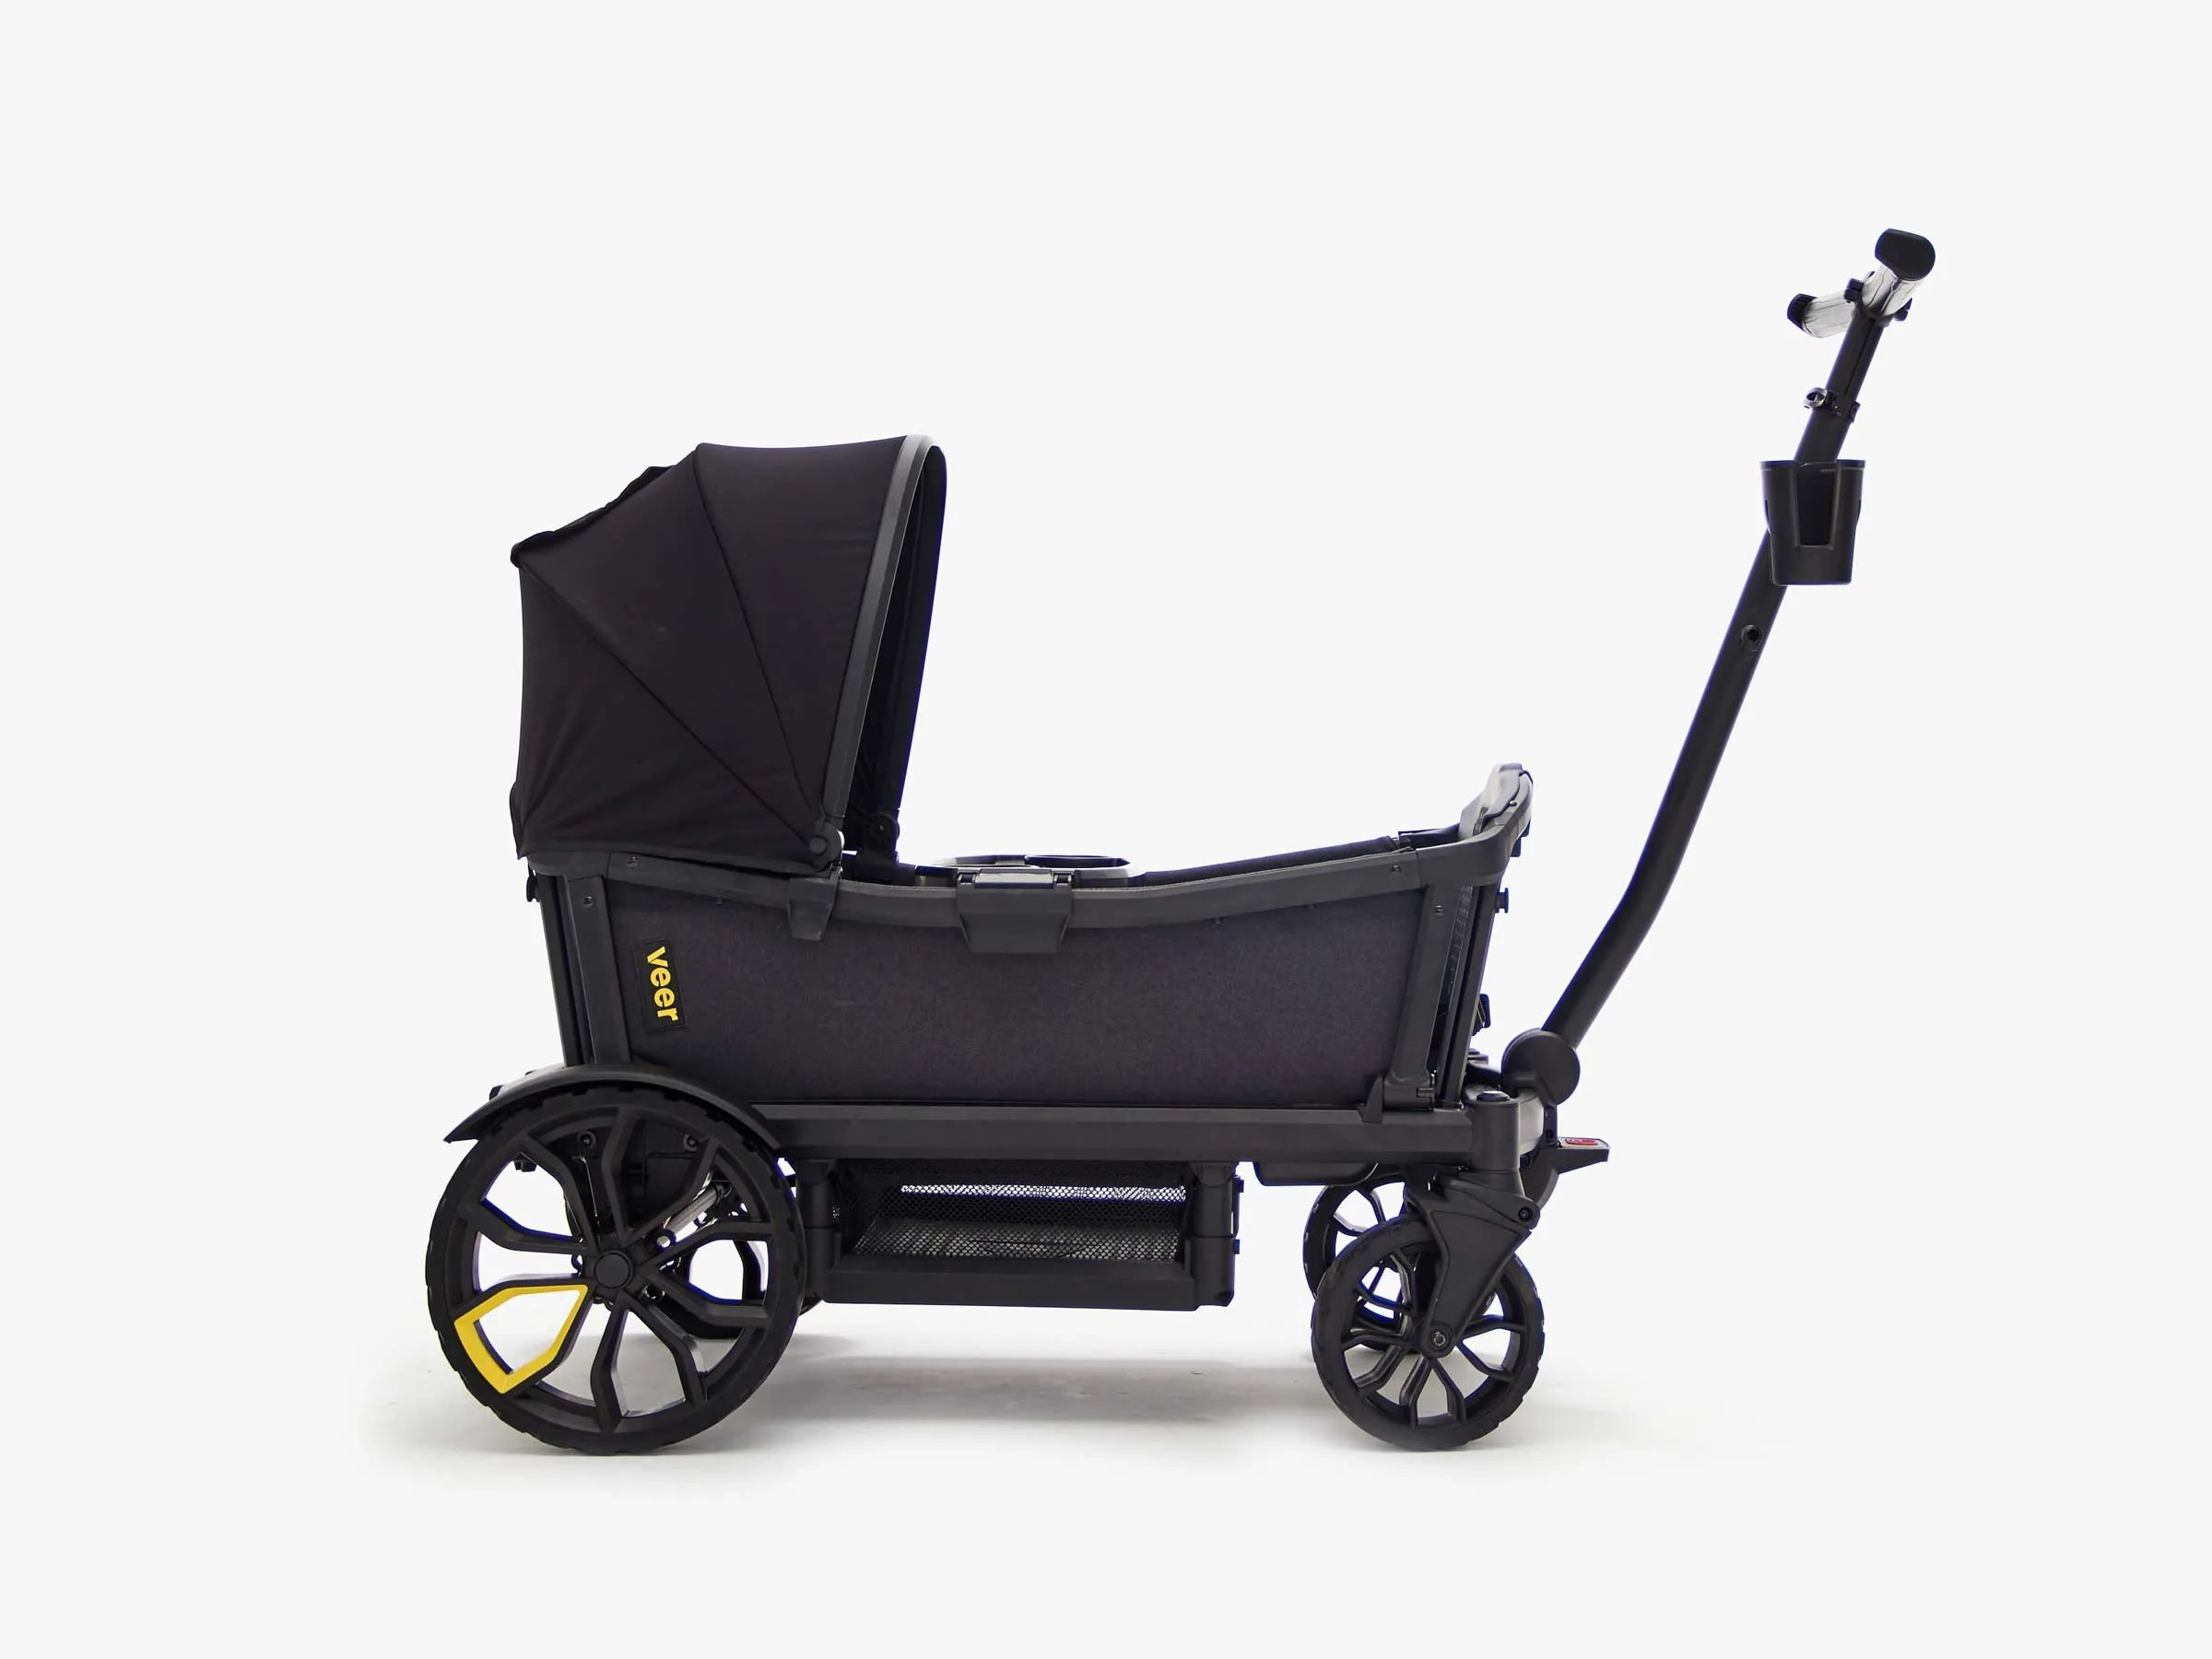 Double Pram Australia Reviews Veer Cruiser Review It Carries Your Kids In Comfort Off Road And On